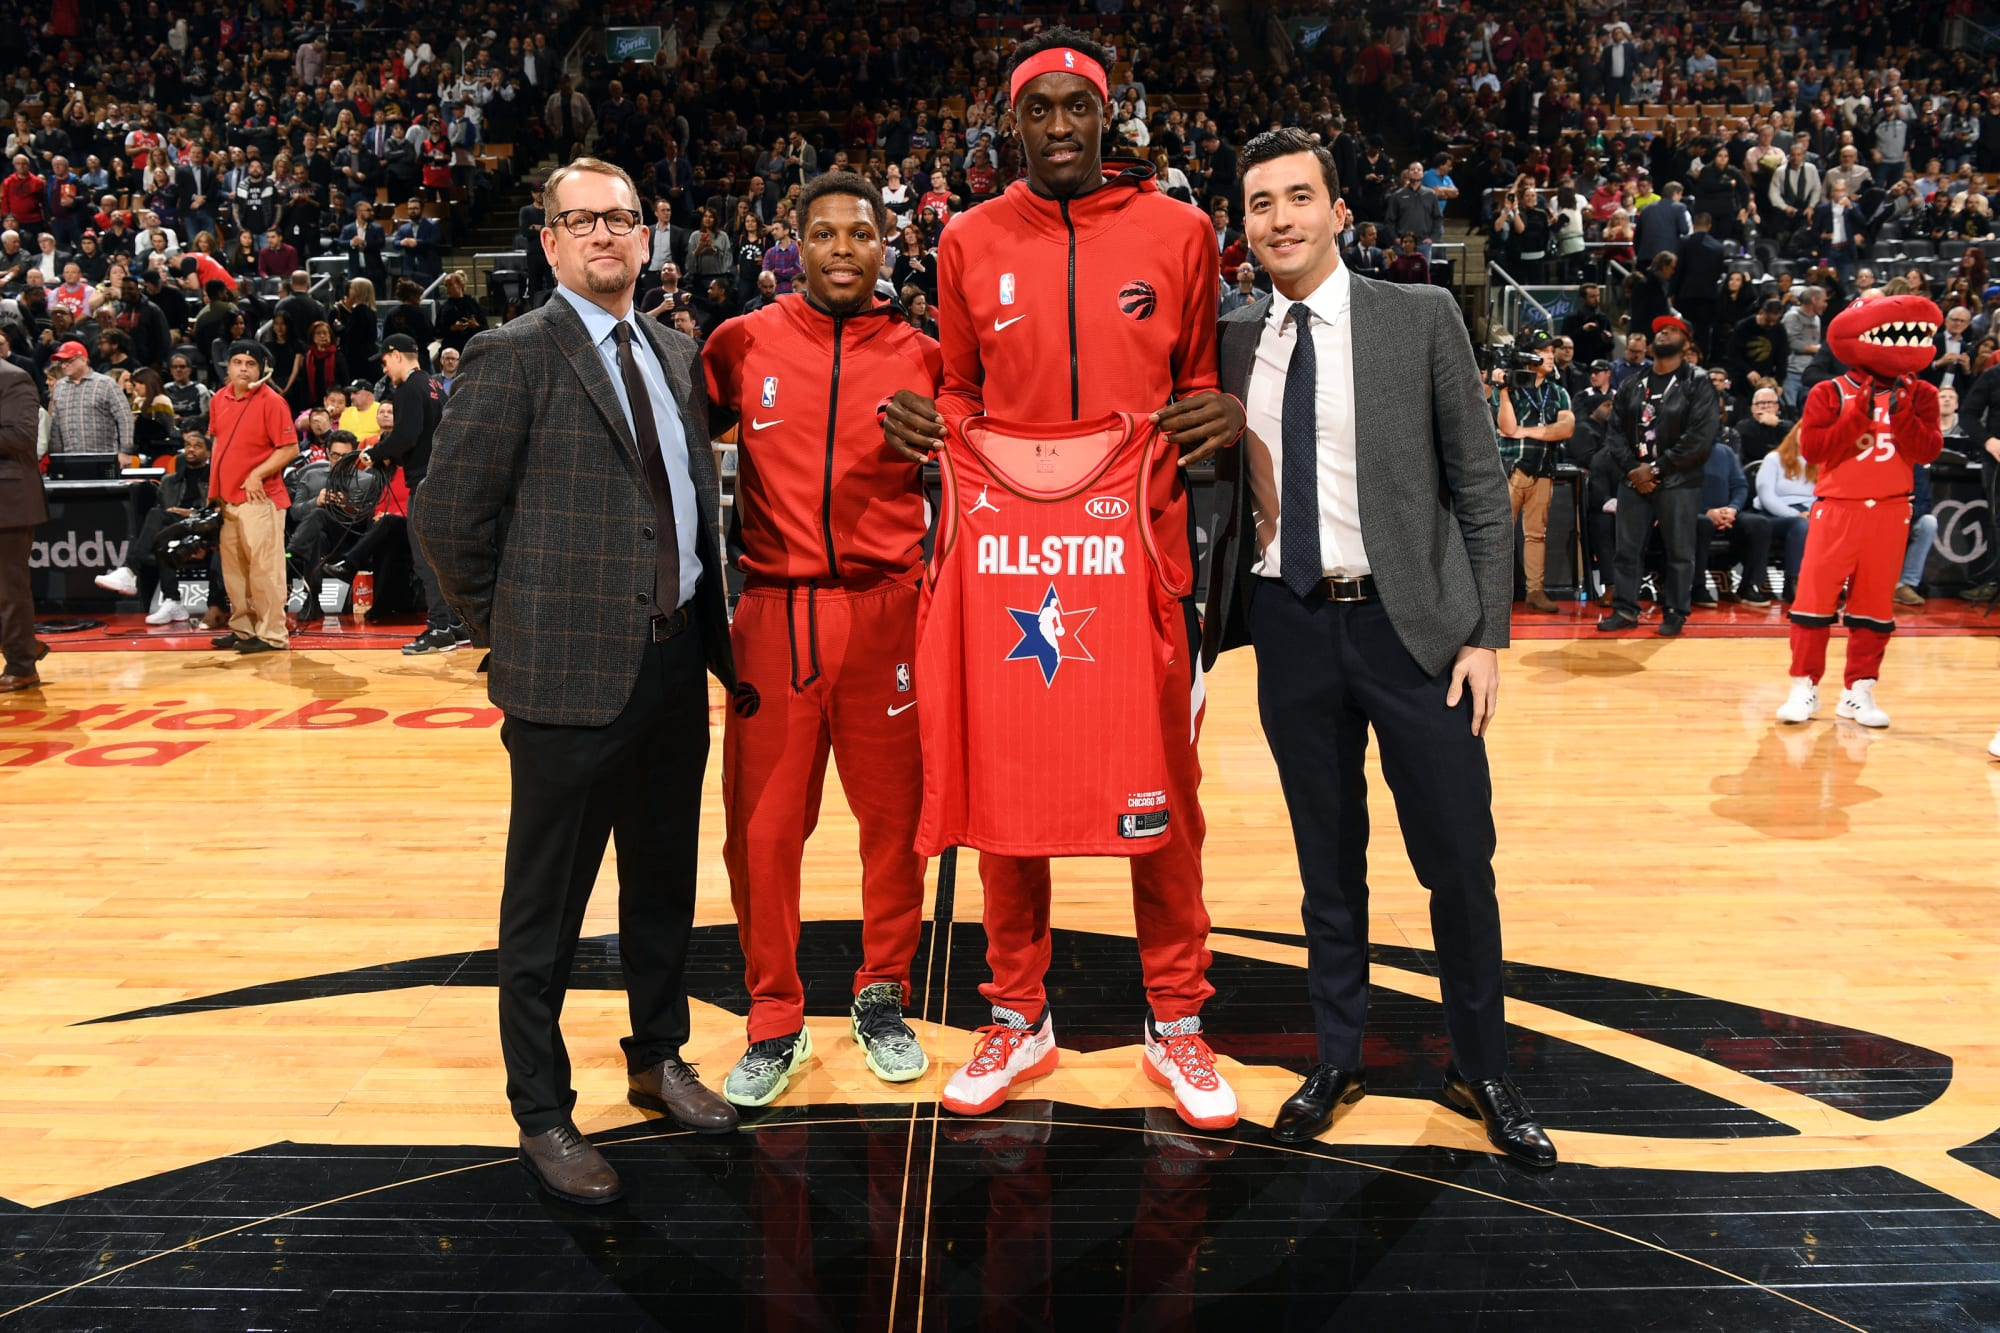 Raptors: Will Toronto's All-Star streak be snapped after seven years?